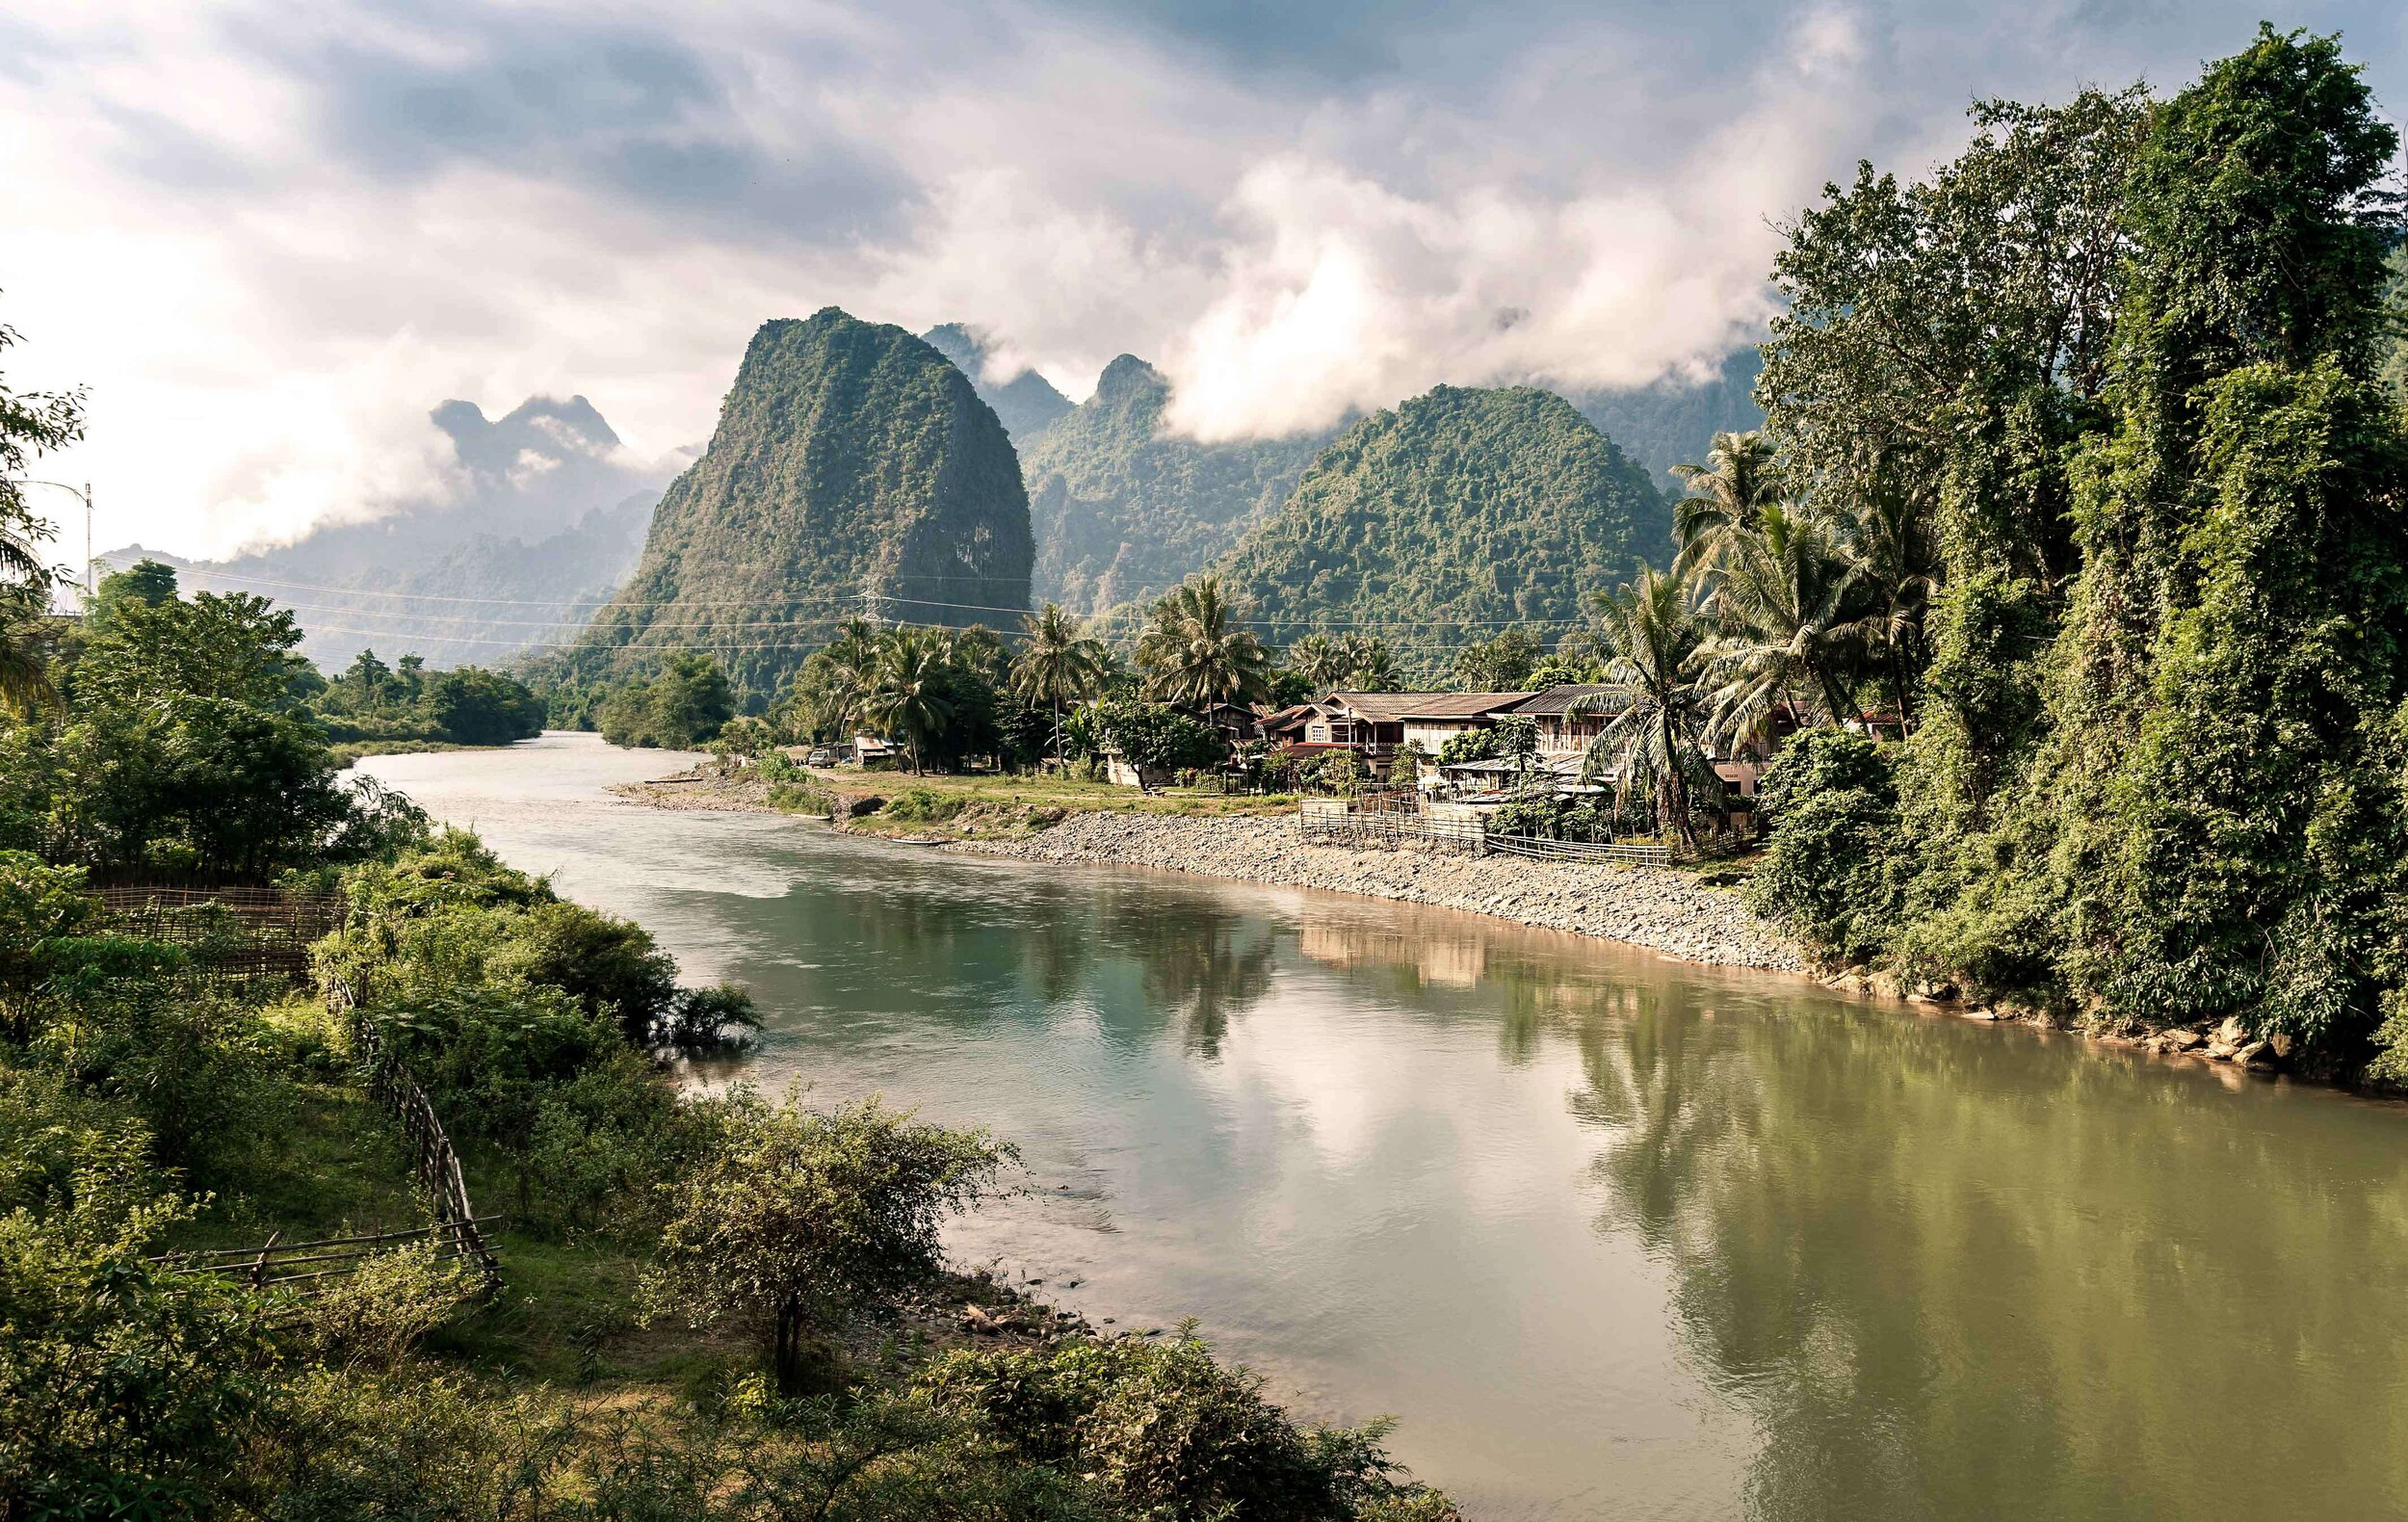 Anouvong Heritage Line - Laos - Excursion - River Scenery